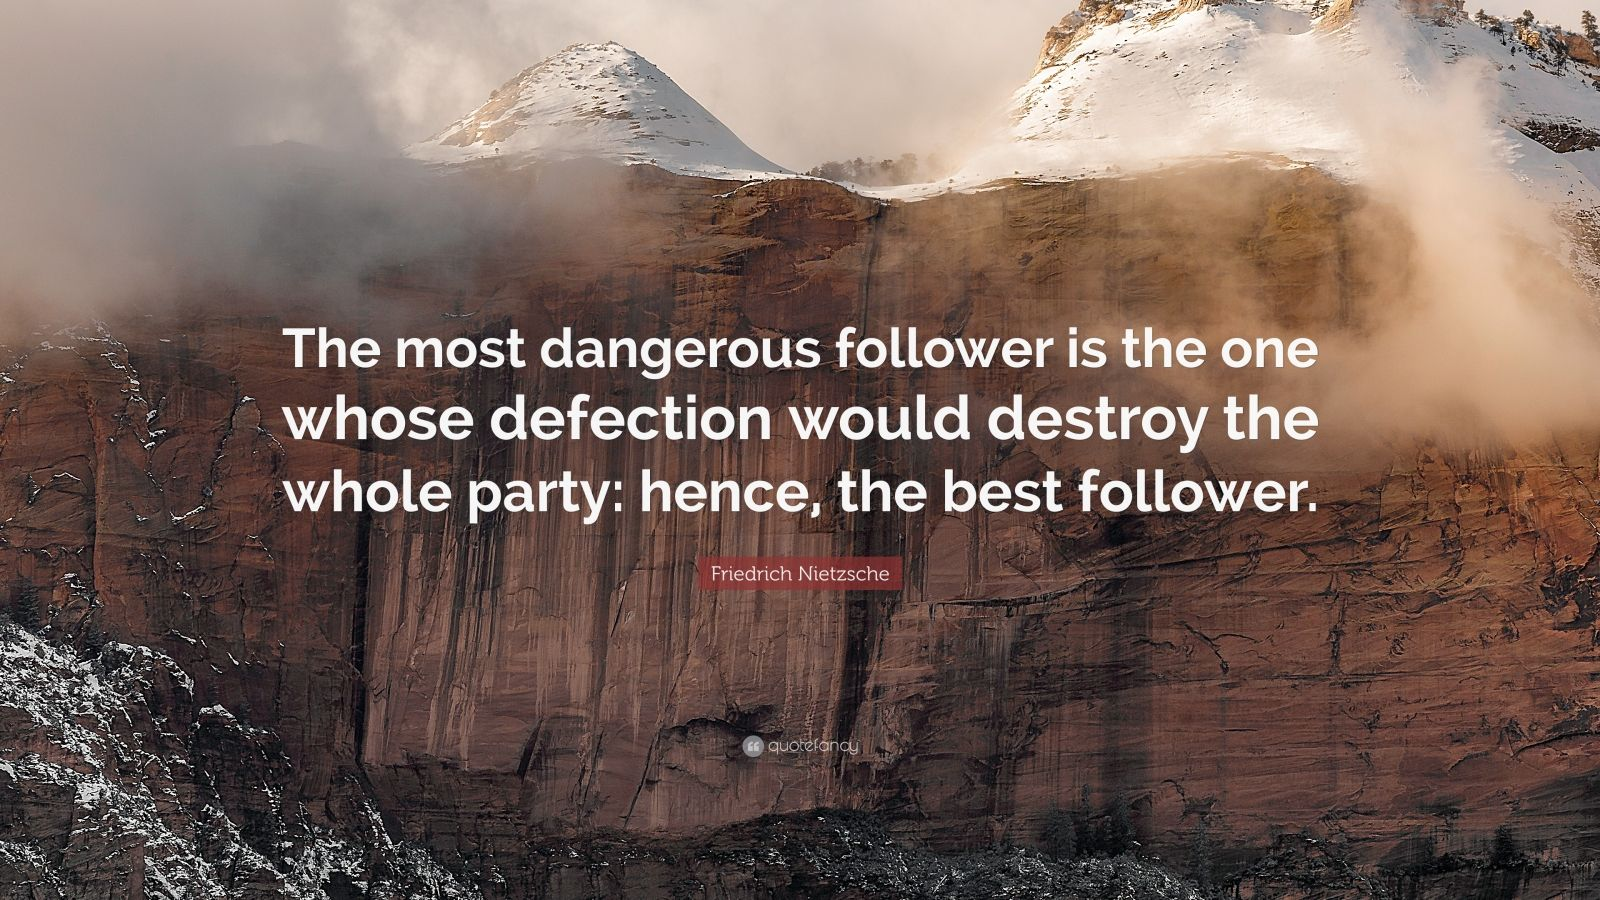 """Friedrich Nietzsche Quote: """"The most dangerous follower is the one whose defection would destroy the whole party: hence, the best follower."""""""